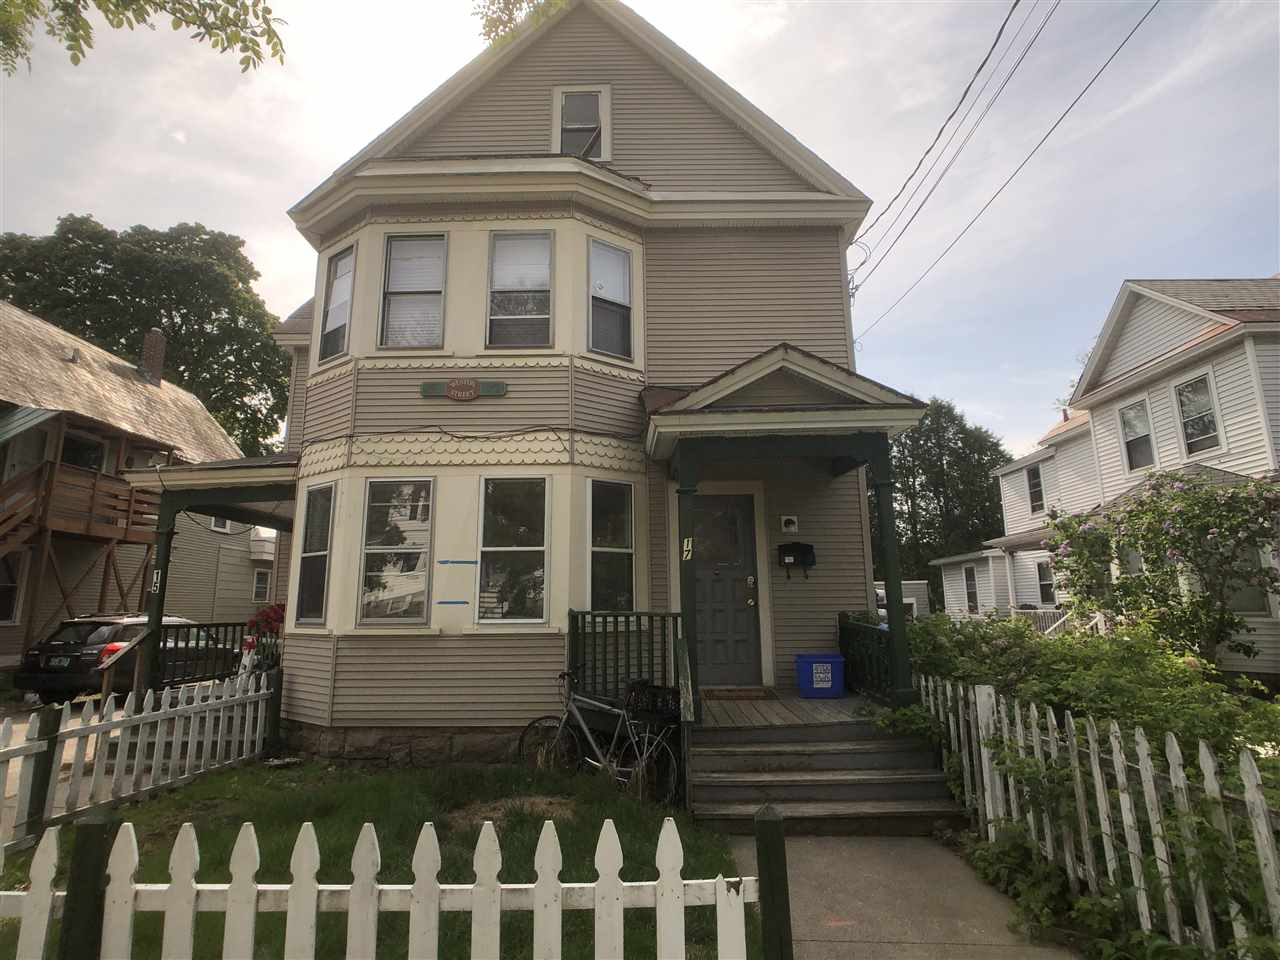 Located on a short one block street between Henry and Loomis Streets, this investment property offers excellent rental history, and solid numbers.  The large first floor unit is leased for the 19-20 school year for $750/bedroom, and includes a washer/dryer in the basement. A new lease is in effect for 20-21 school year for the same rent.  The second floor 1 bedroom unit was updated in 2017 to include new carpet in the bedroom, new laminate flooring in the kitchen and living room, new kitchen counter, and new washer/dryer.  Prime college rental location in the heart of downtown, with exceptional access to campuses, downtown, and UVM Medical Center.  Six approved off street parking spaces, and a large back yard makes it attractive to tenants.